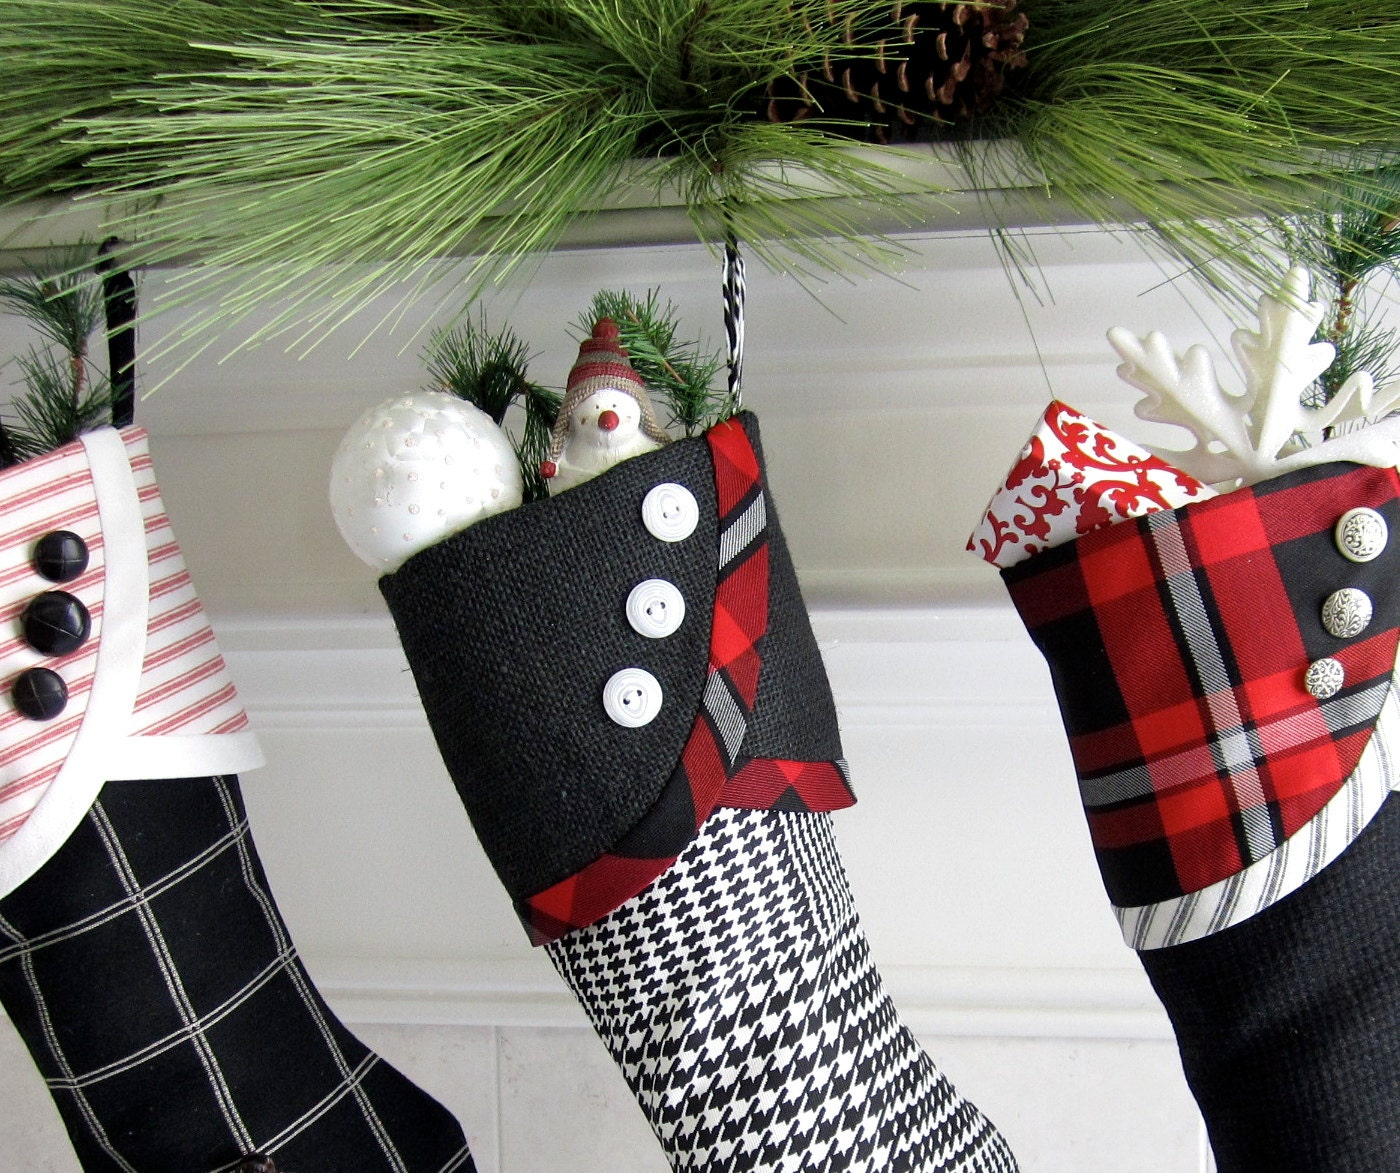 No. 2 Christmas Stocking Black & White and a little Red - Droopy Toe Style